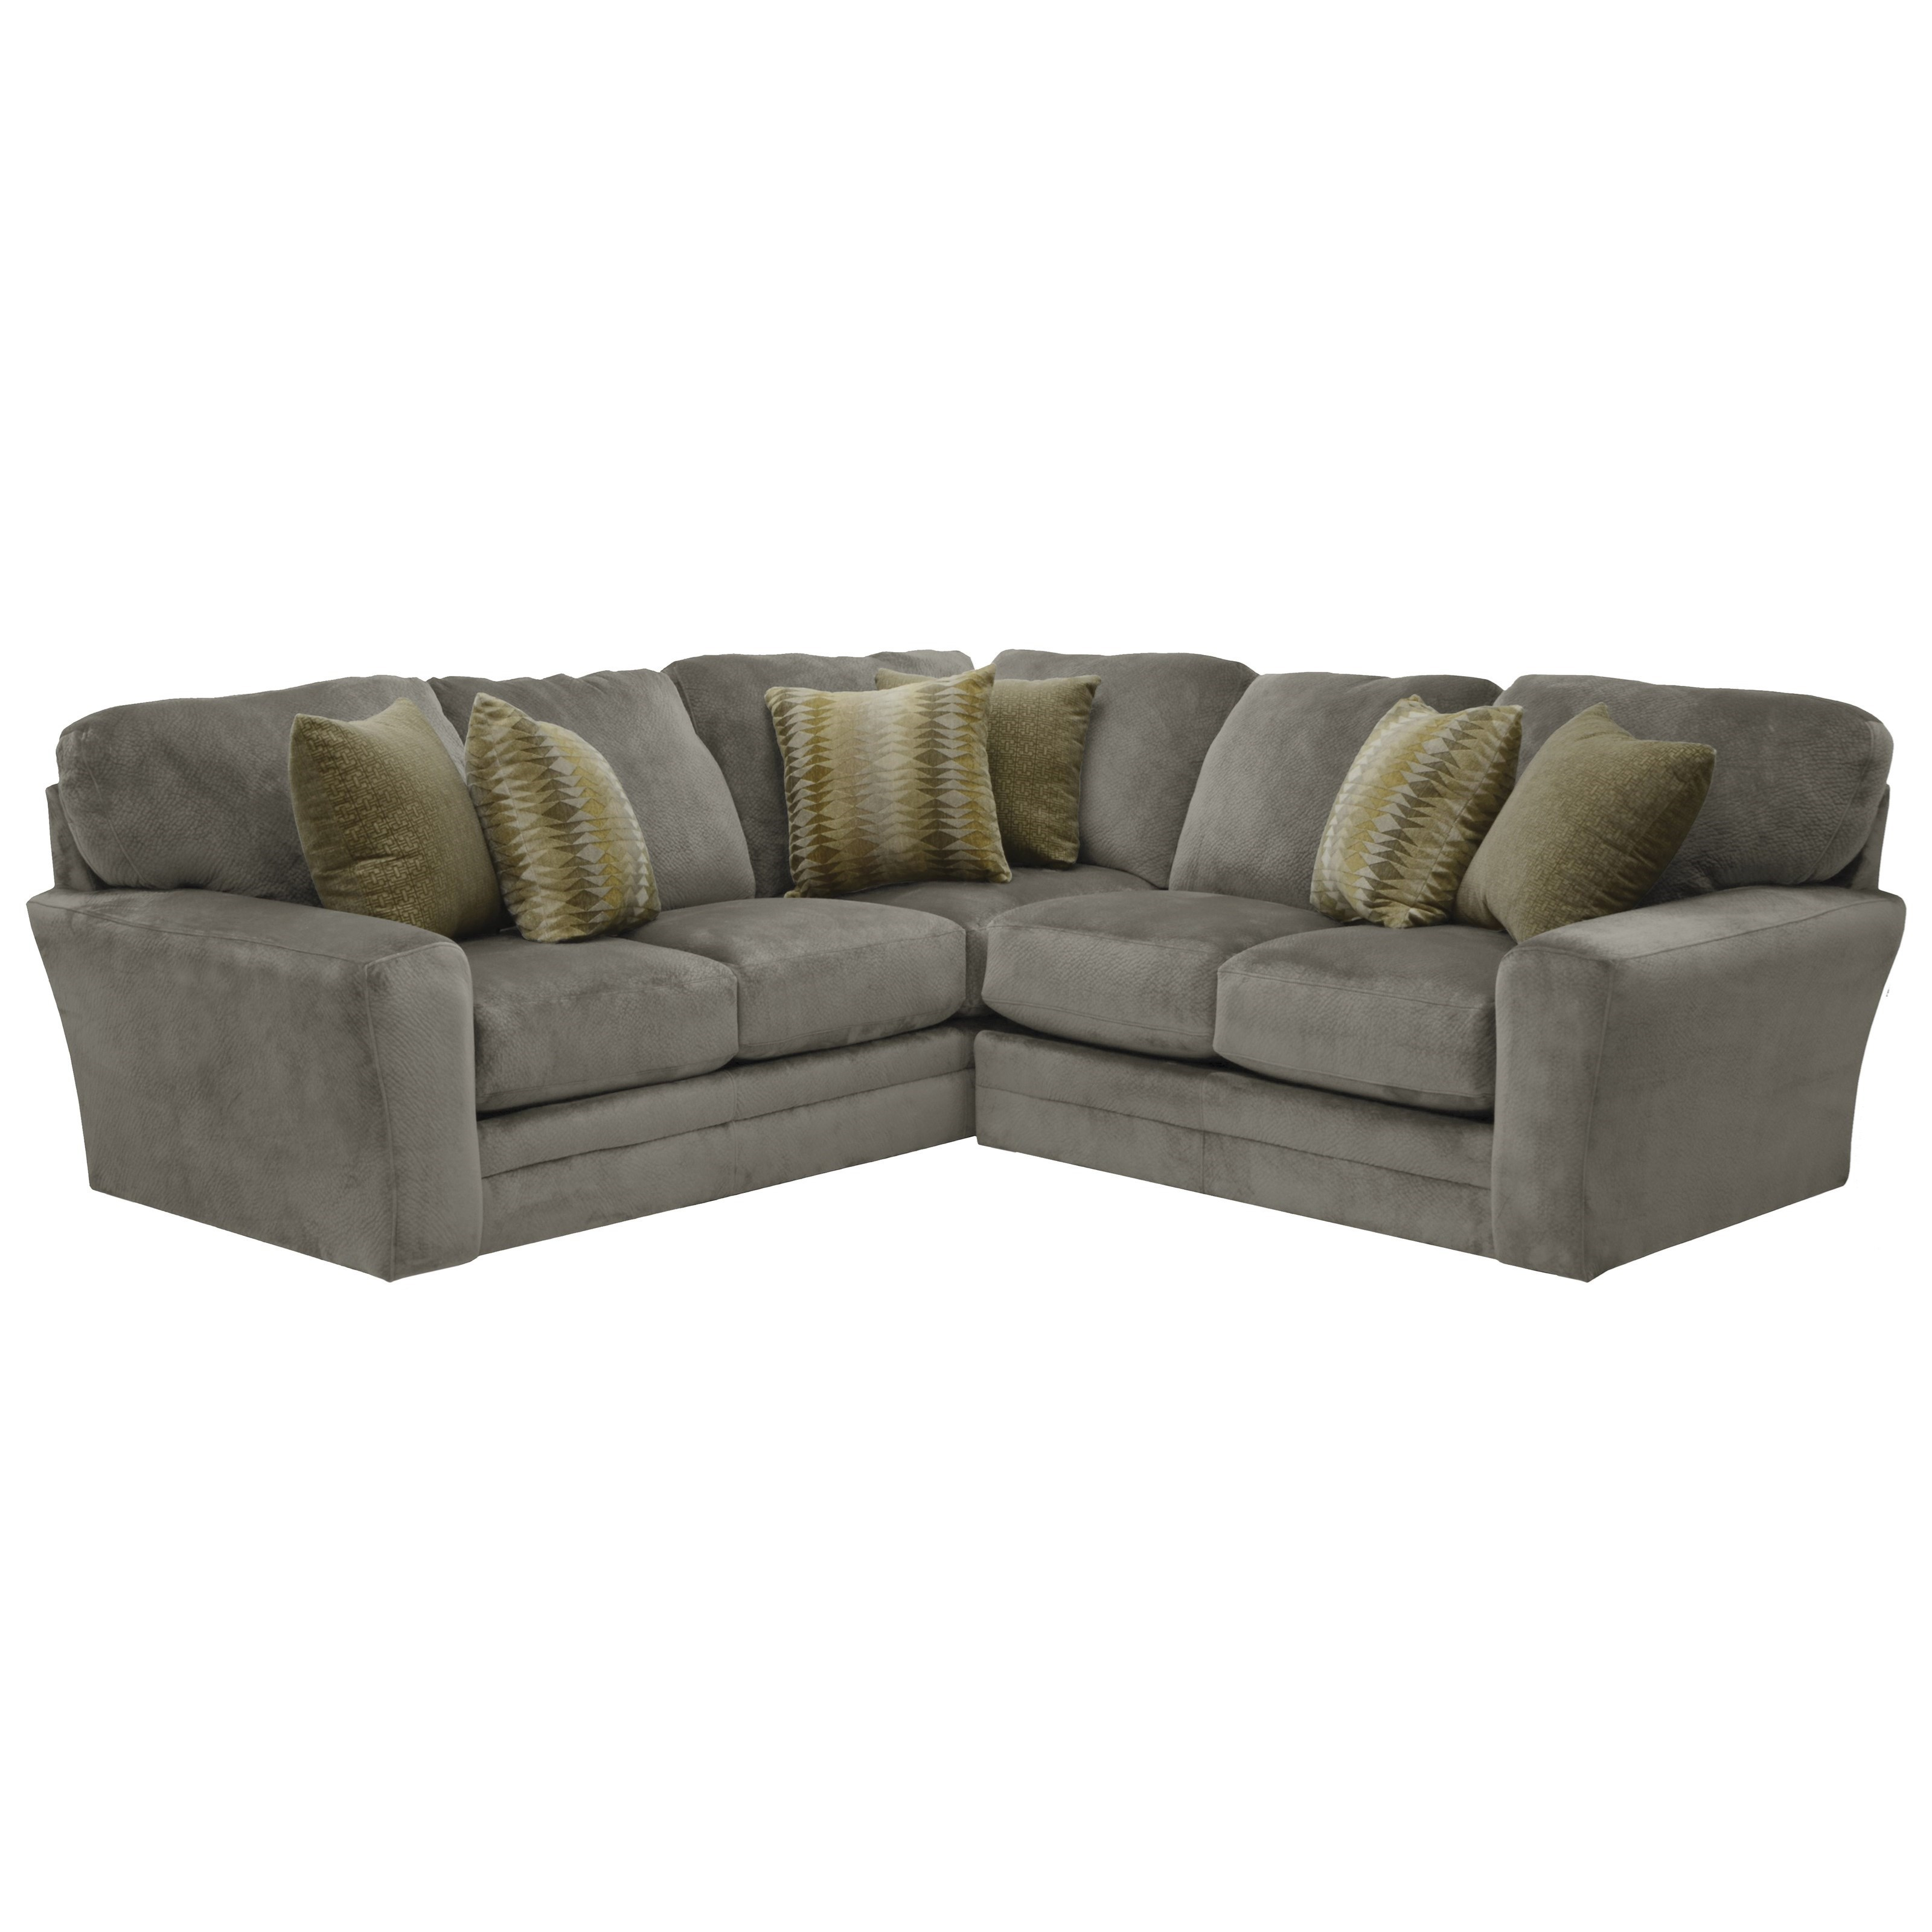 jackson furniture sectional sofas super plush convertible storage sofa everest 2 piece with track